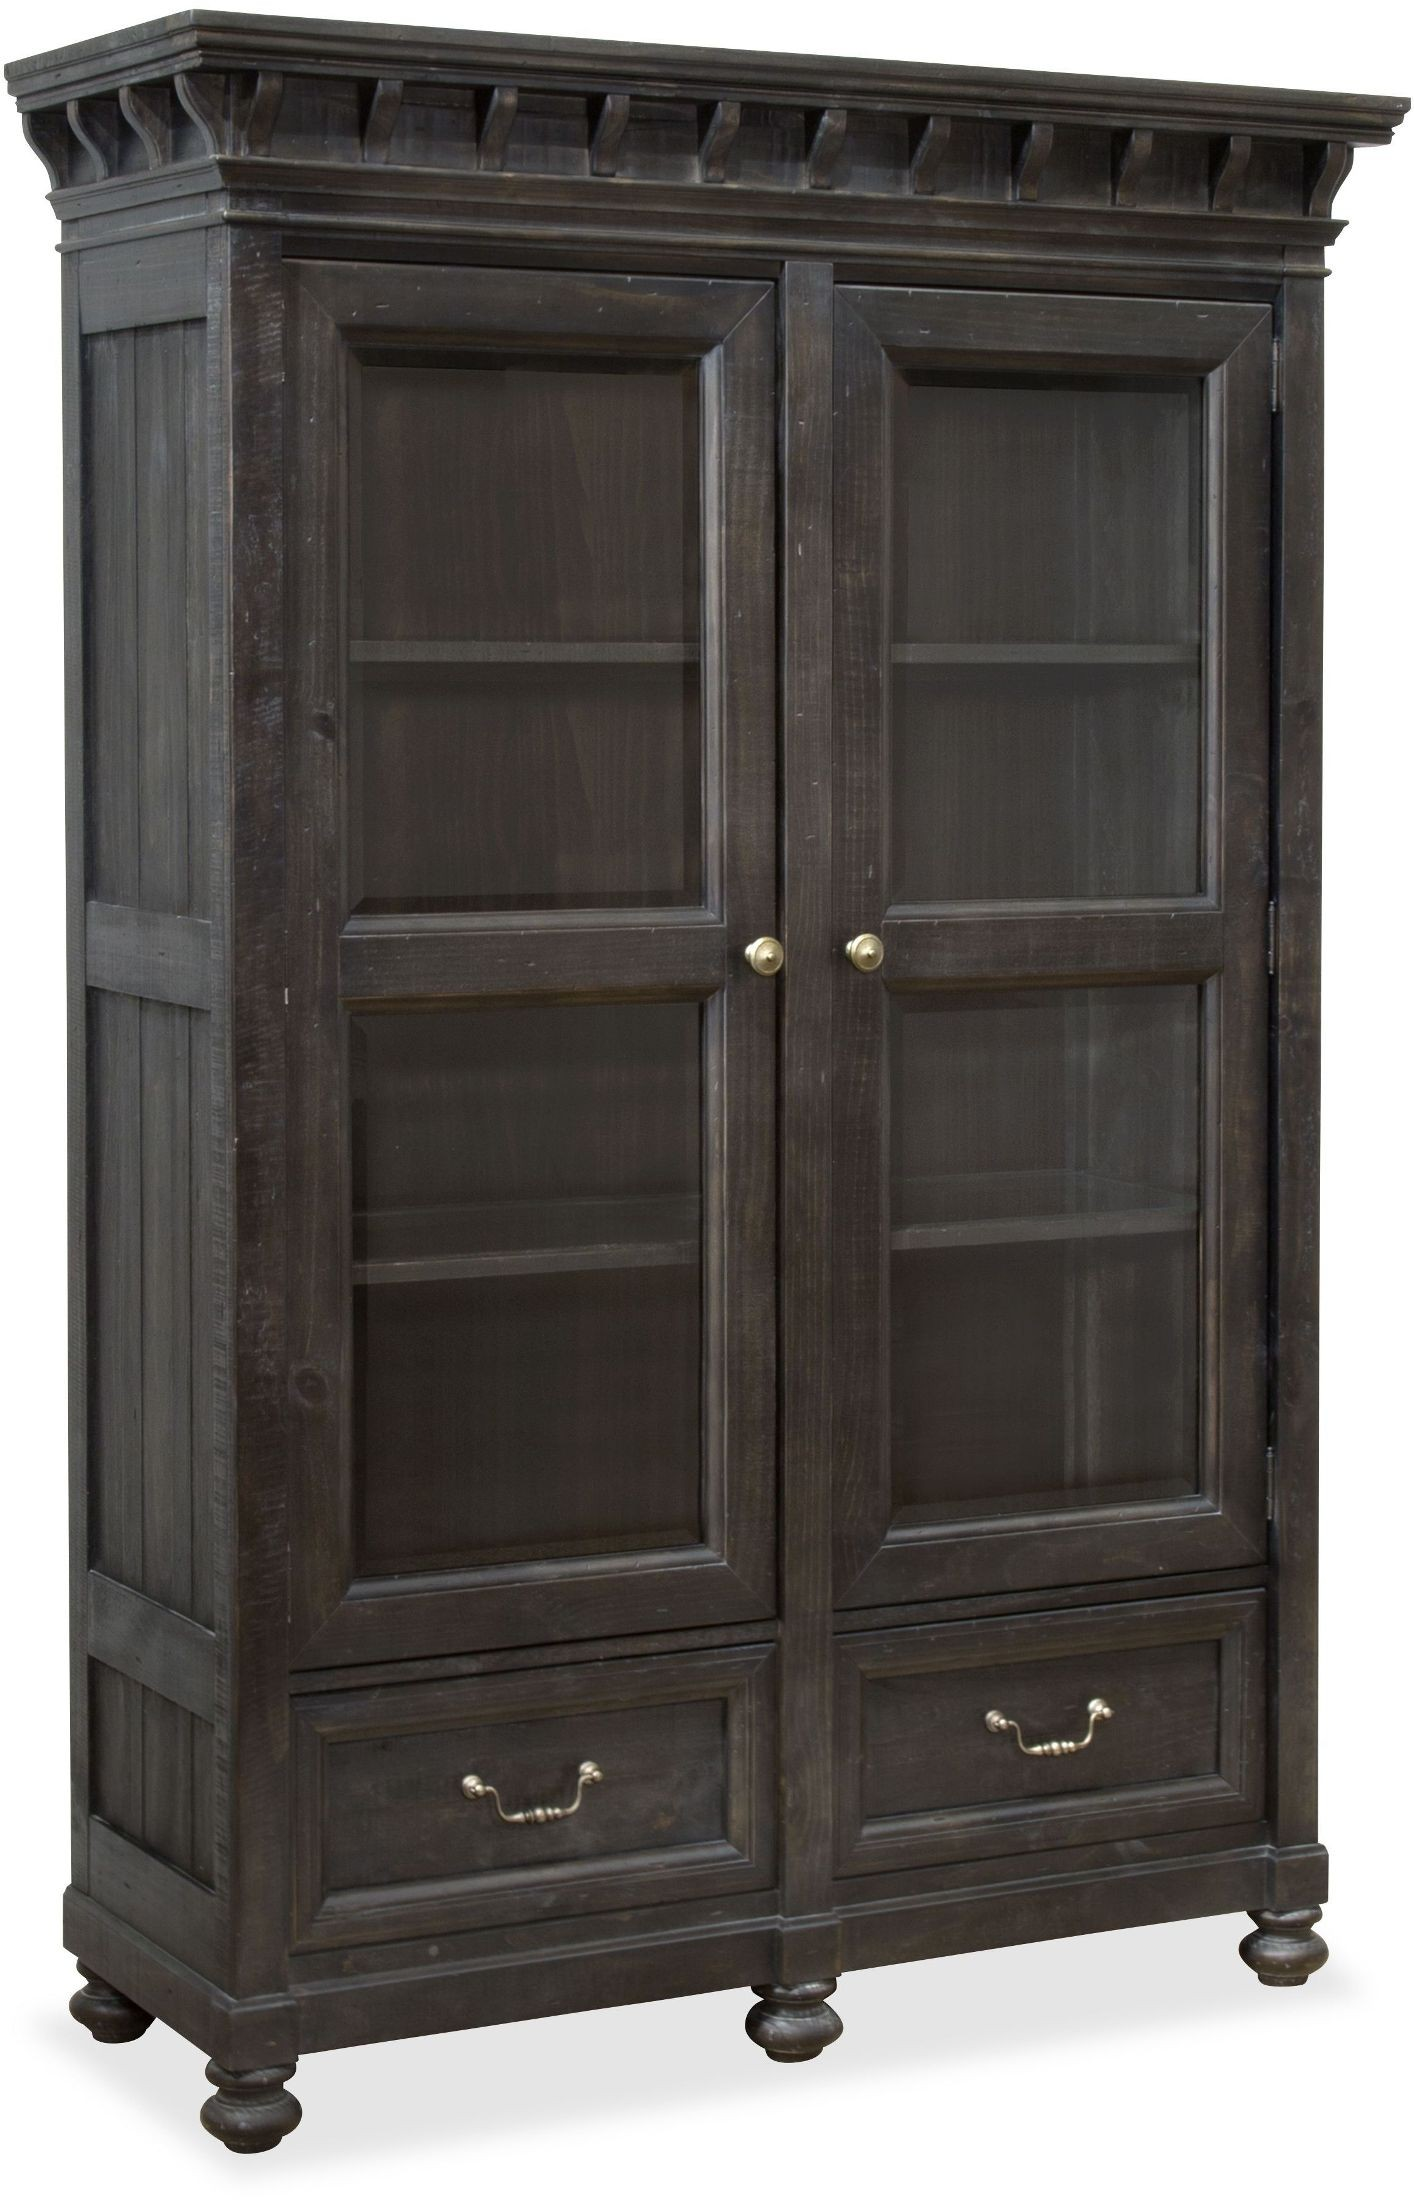 Bedford Corners Anvil Black China Cabinet From Magnussen